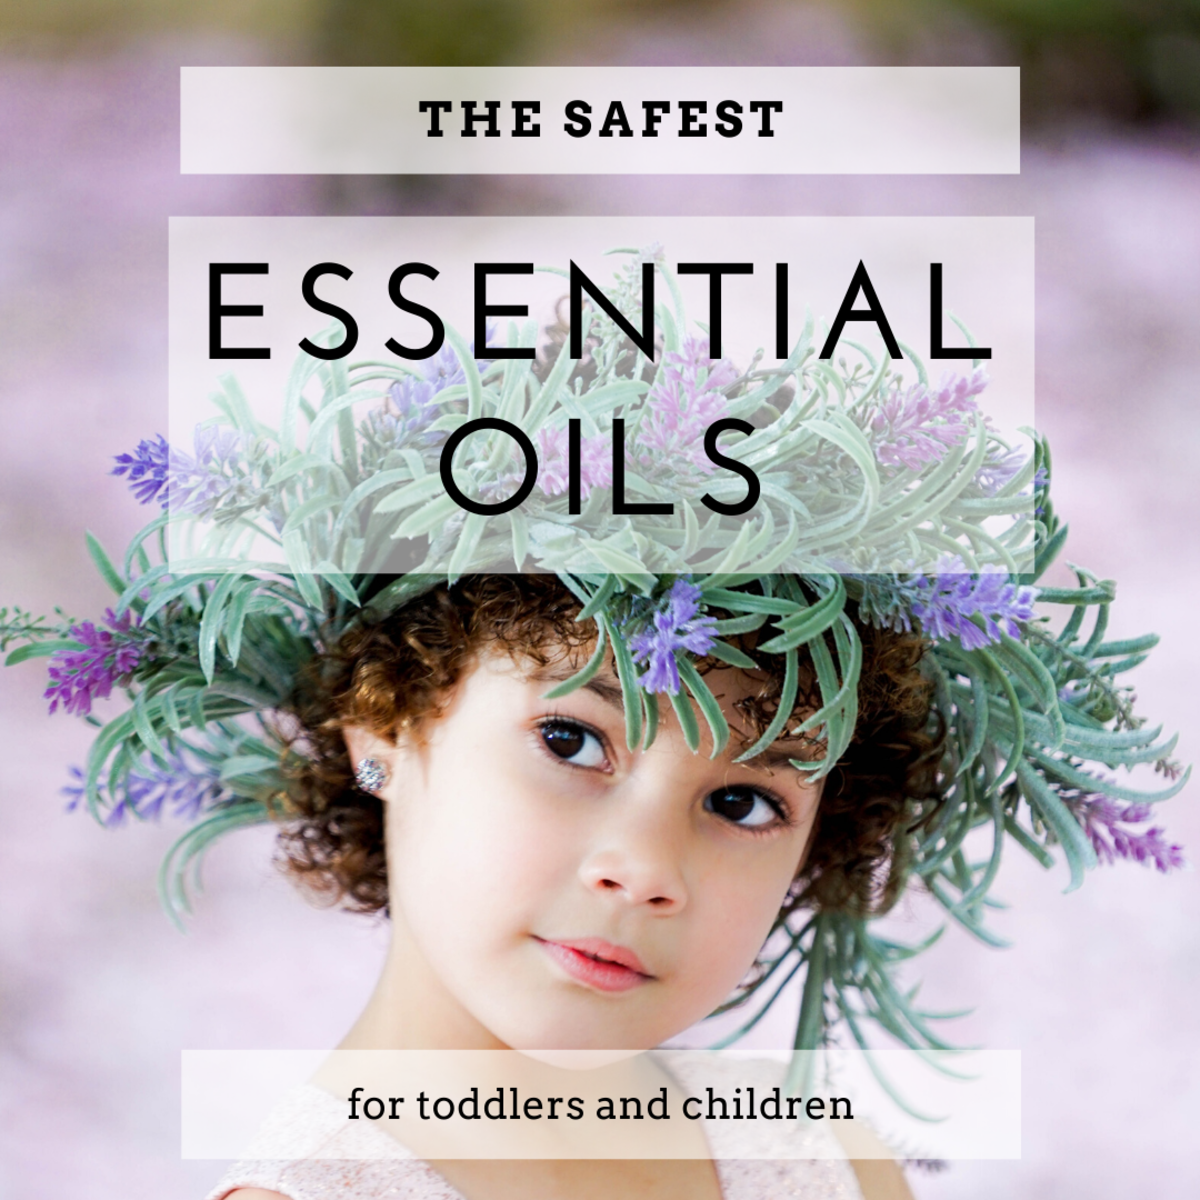 7 Safest Essential Oils for Toddlers and Children